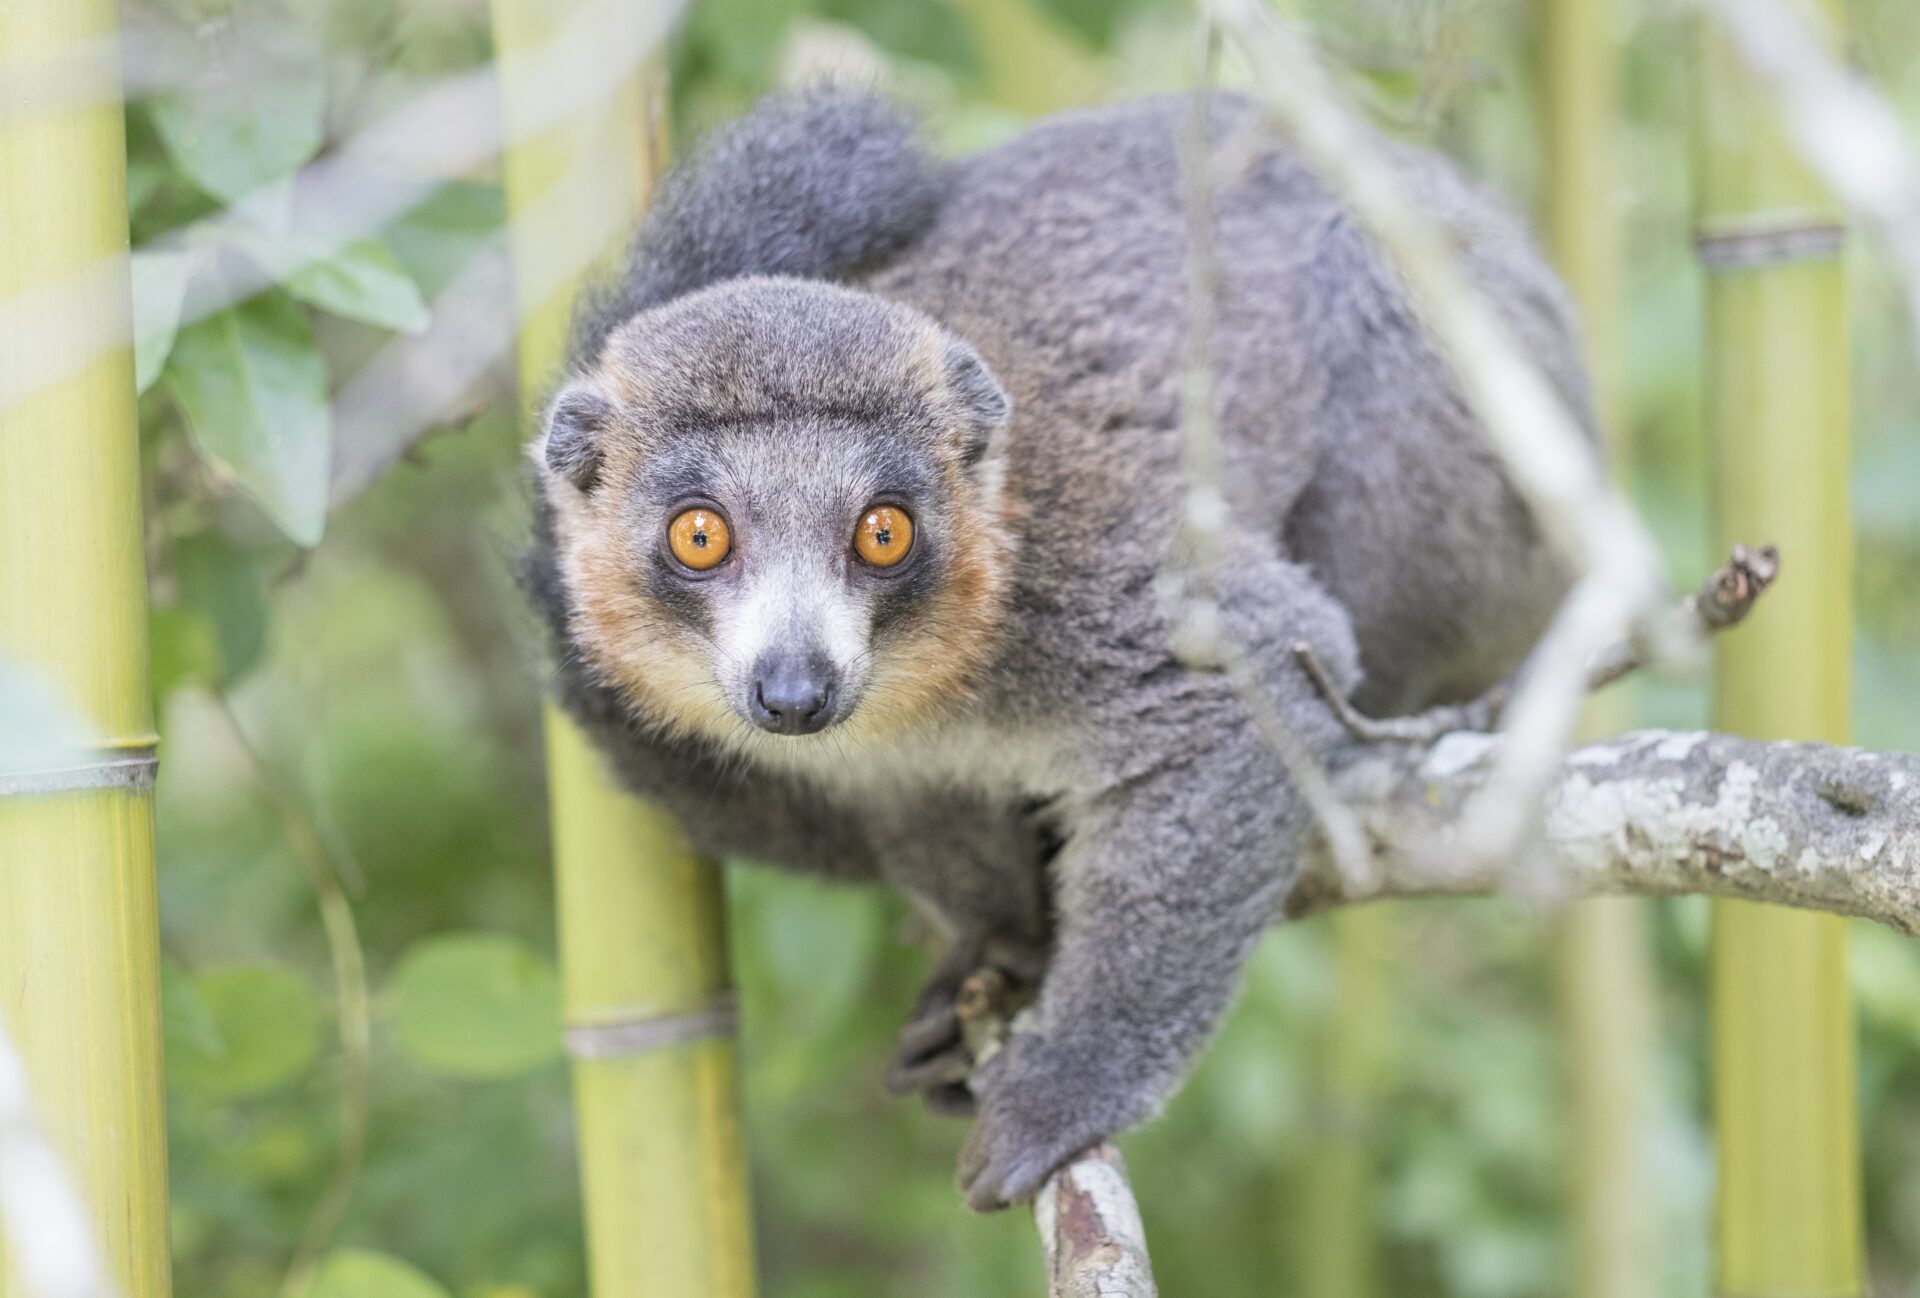 Male mongoose lemur looking directly at the camera against a background of bamboo. Photo by Sara Clark.